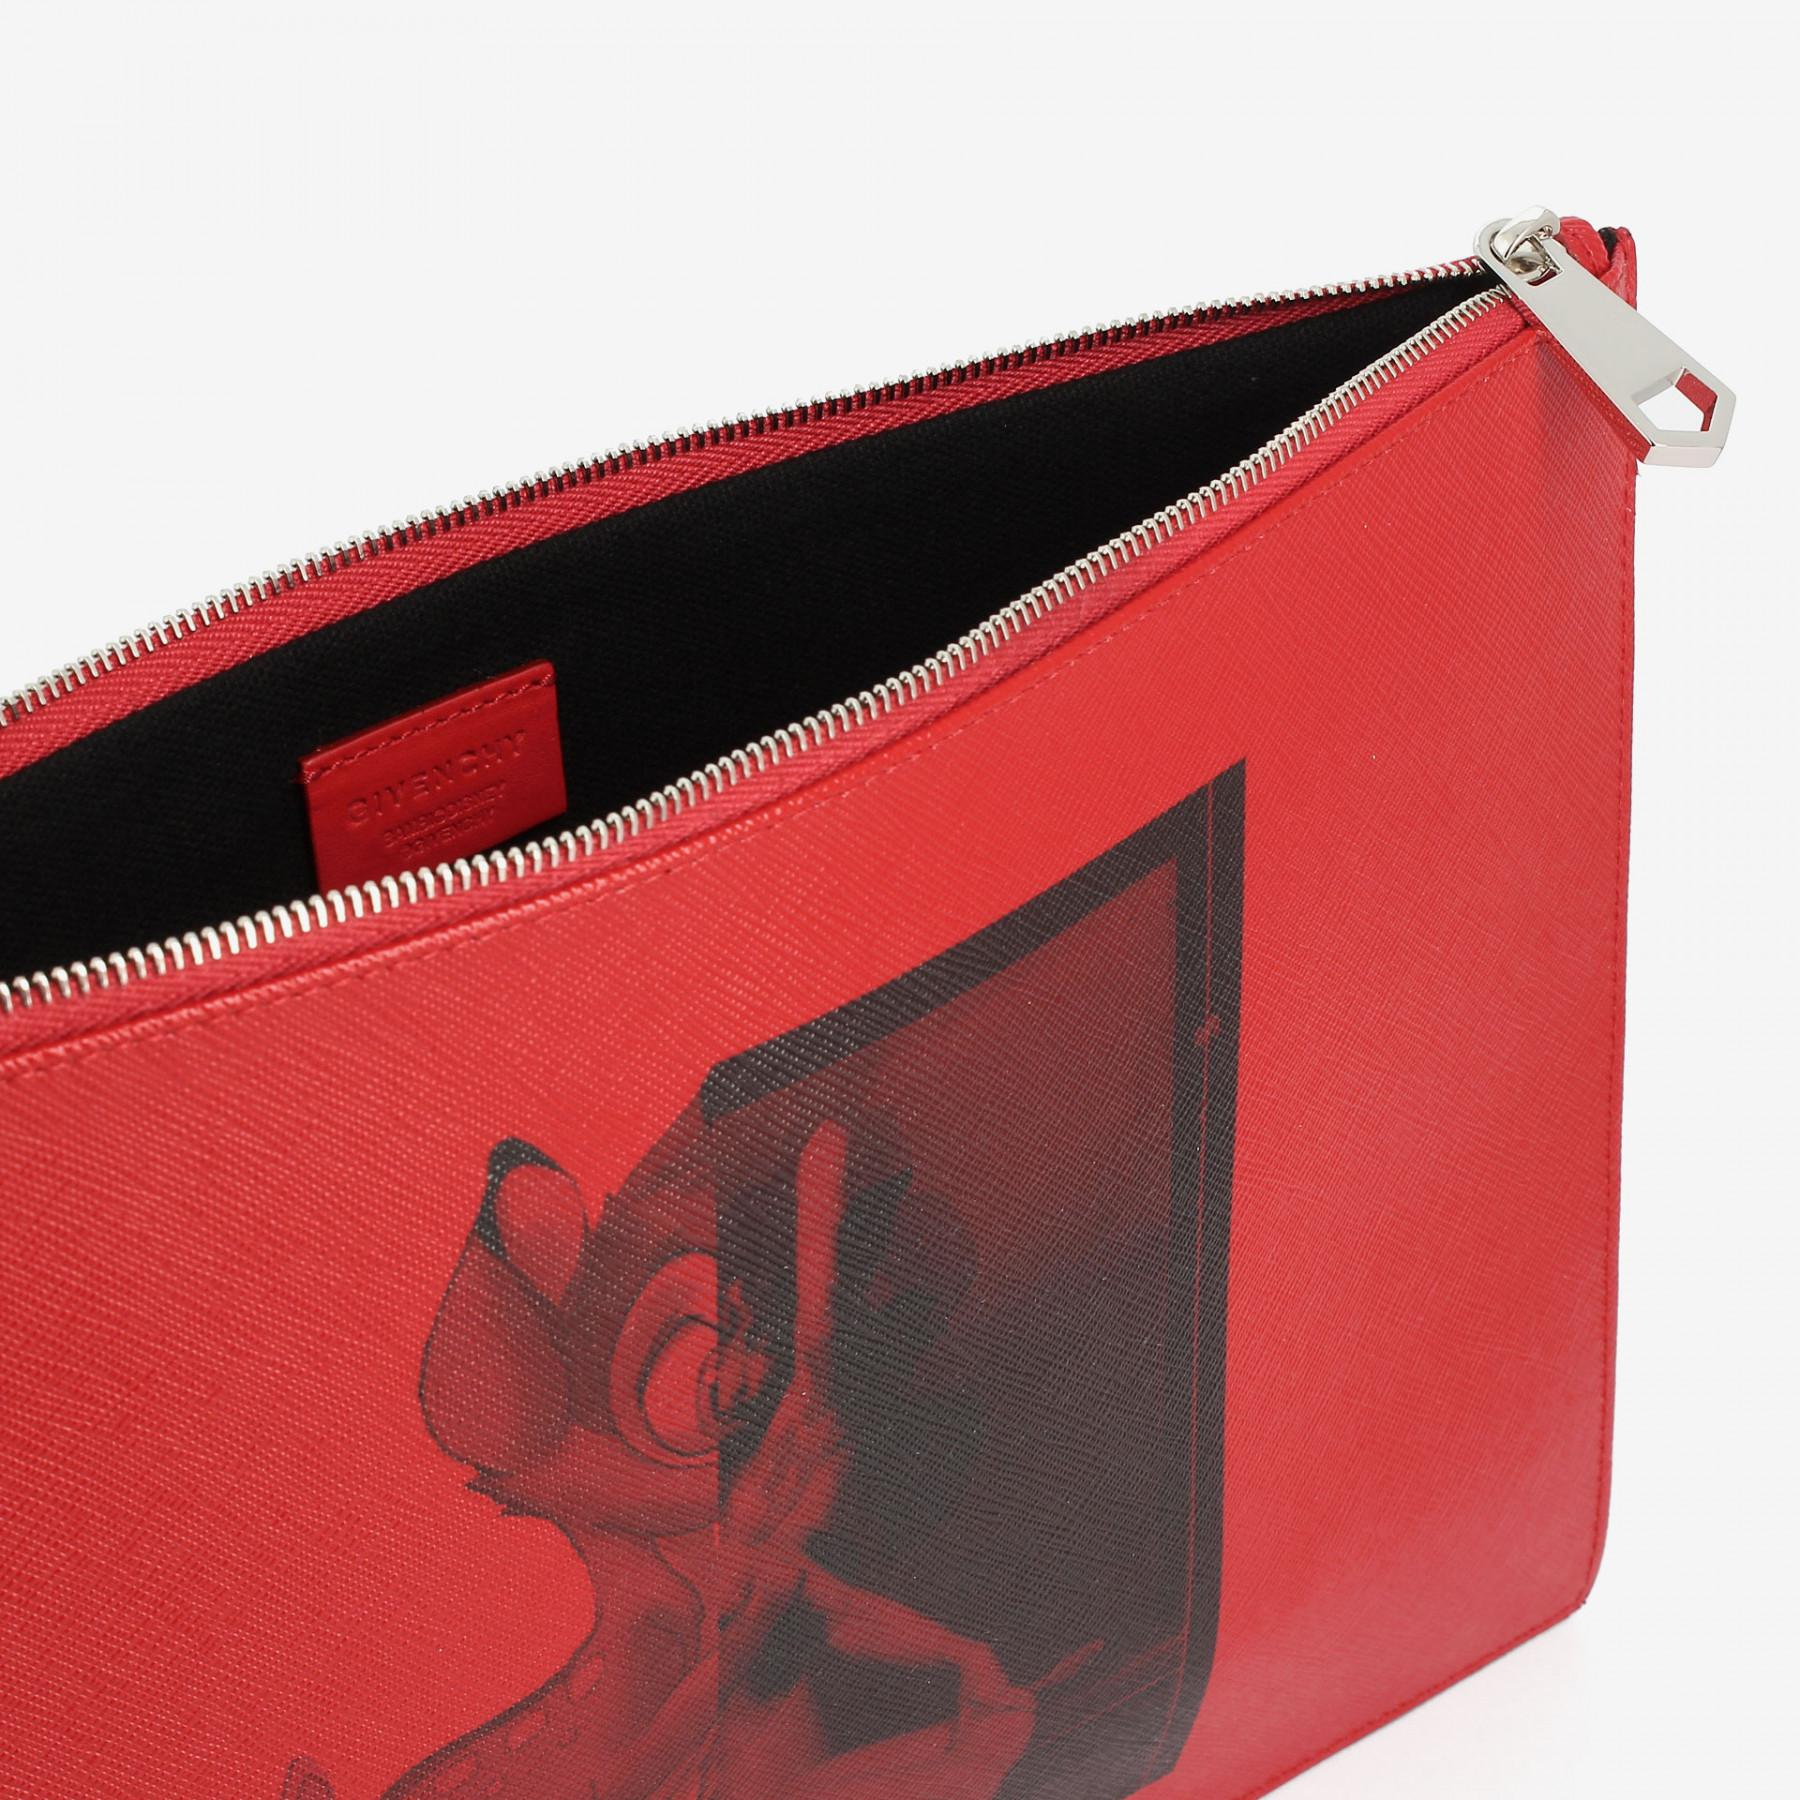 pouch clutch - Red Givenchy orYFCIJ7p